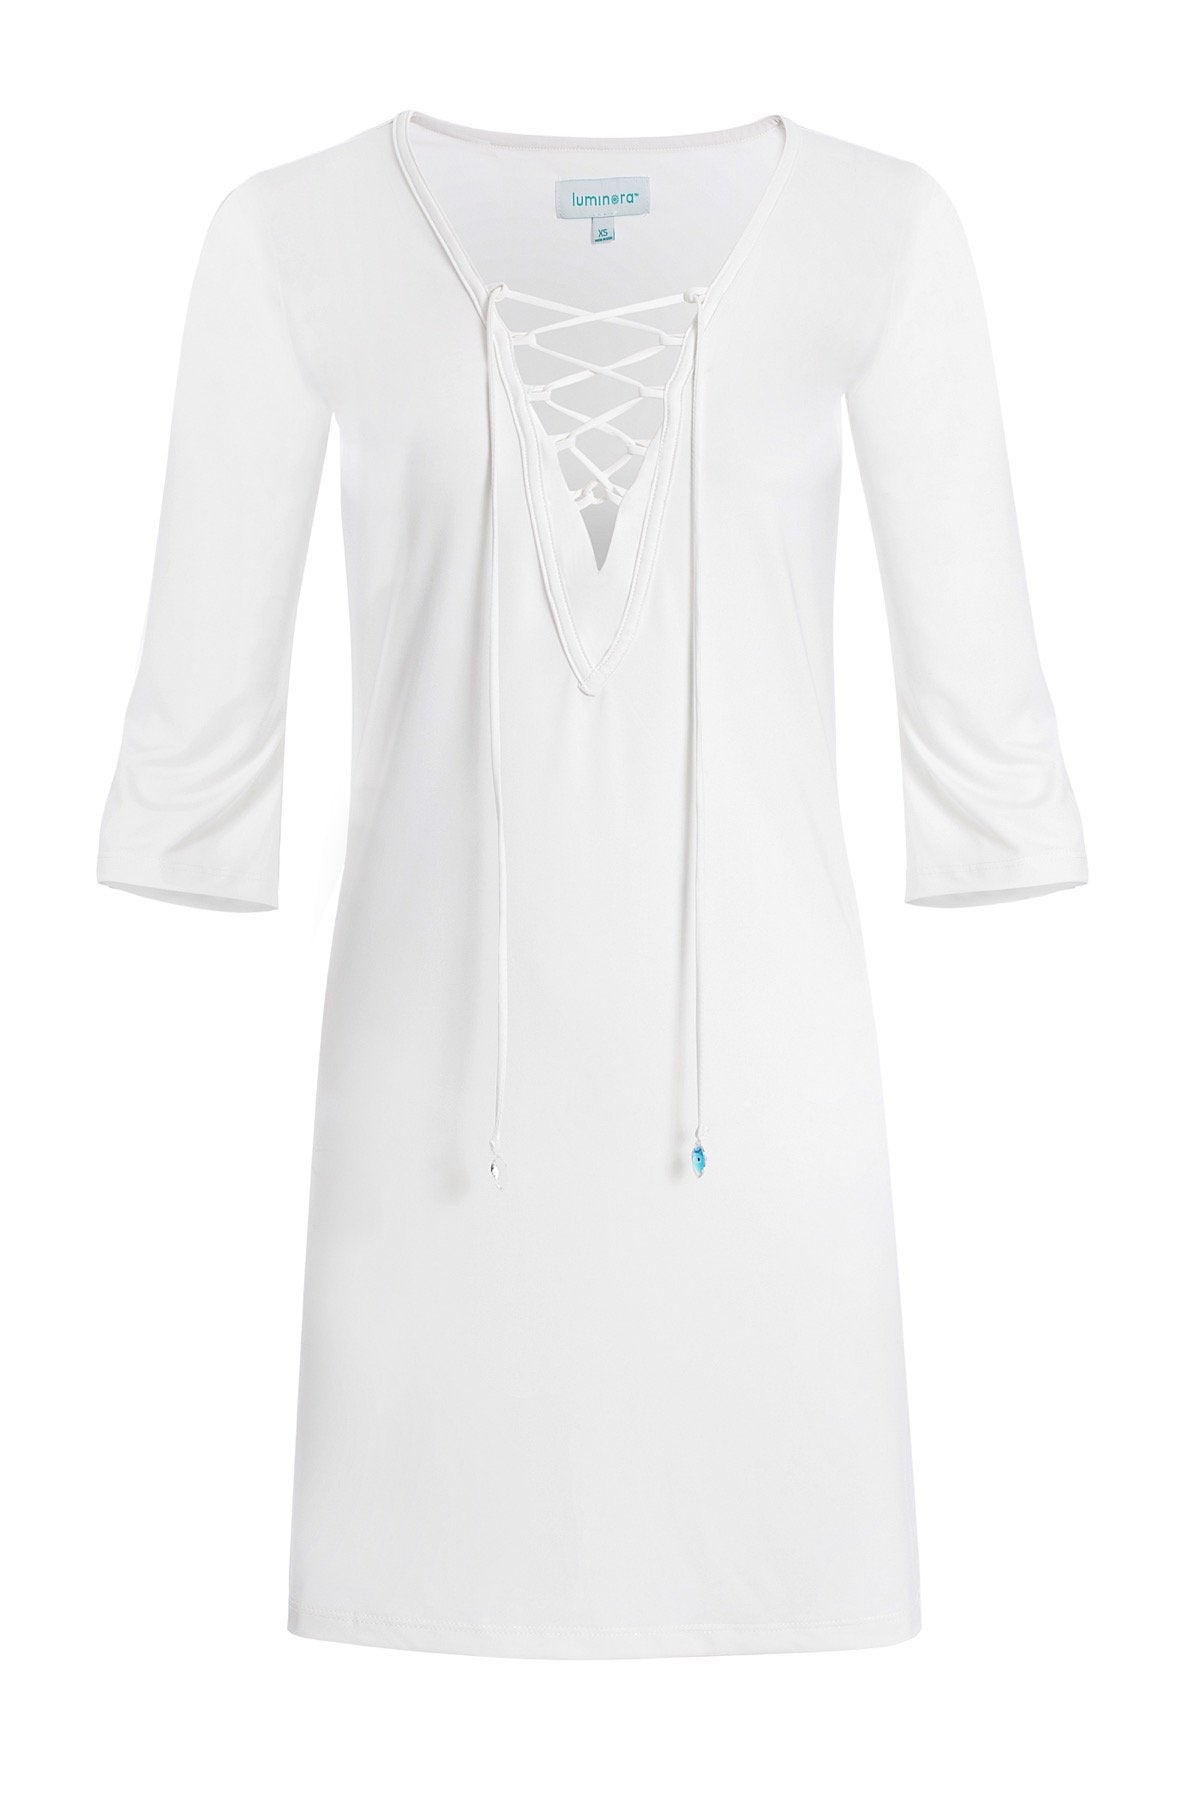 Sicily Tunic - Luminora